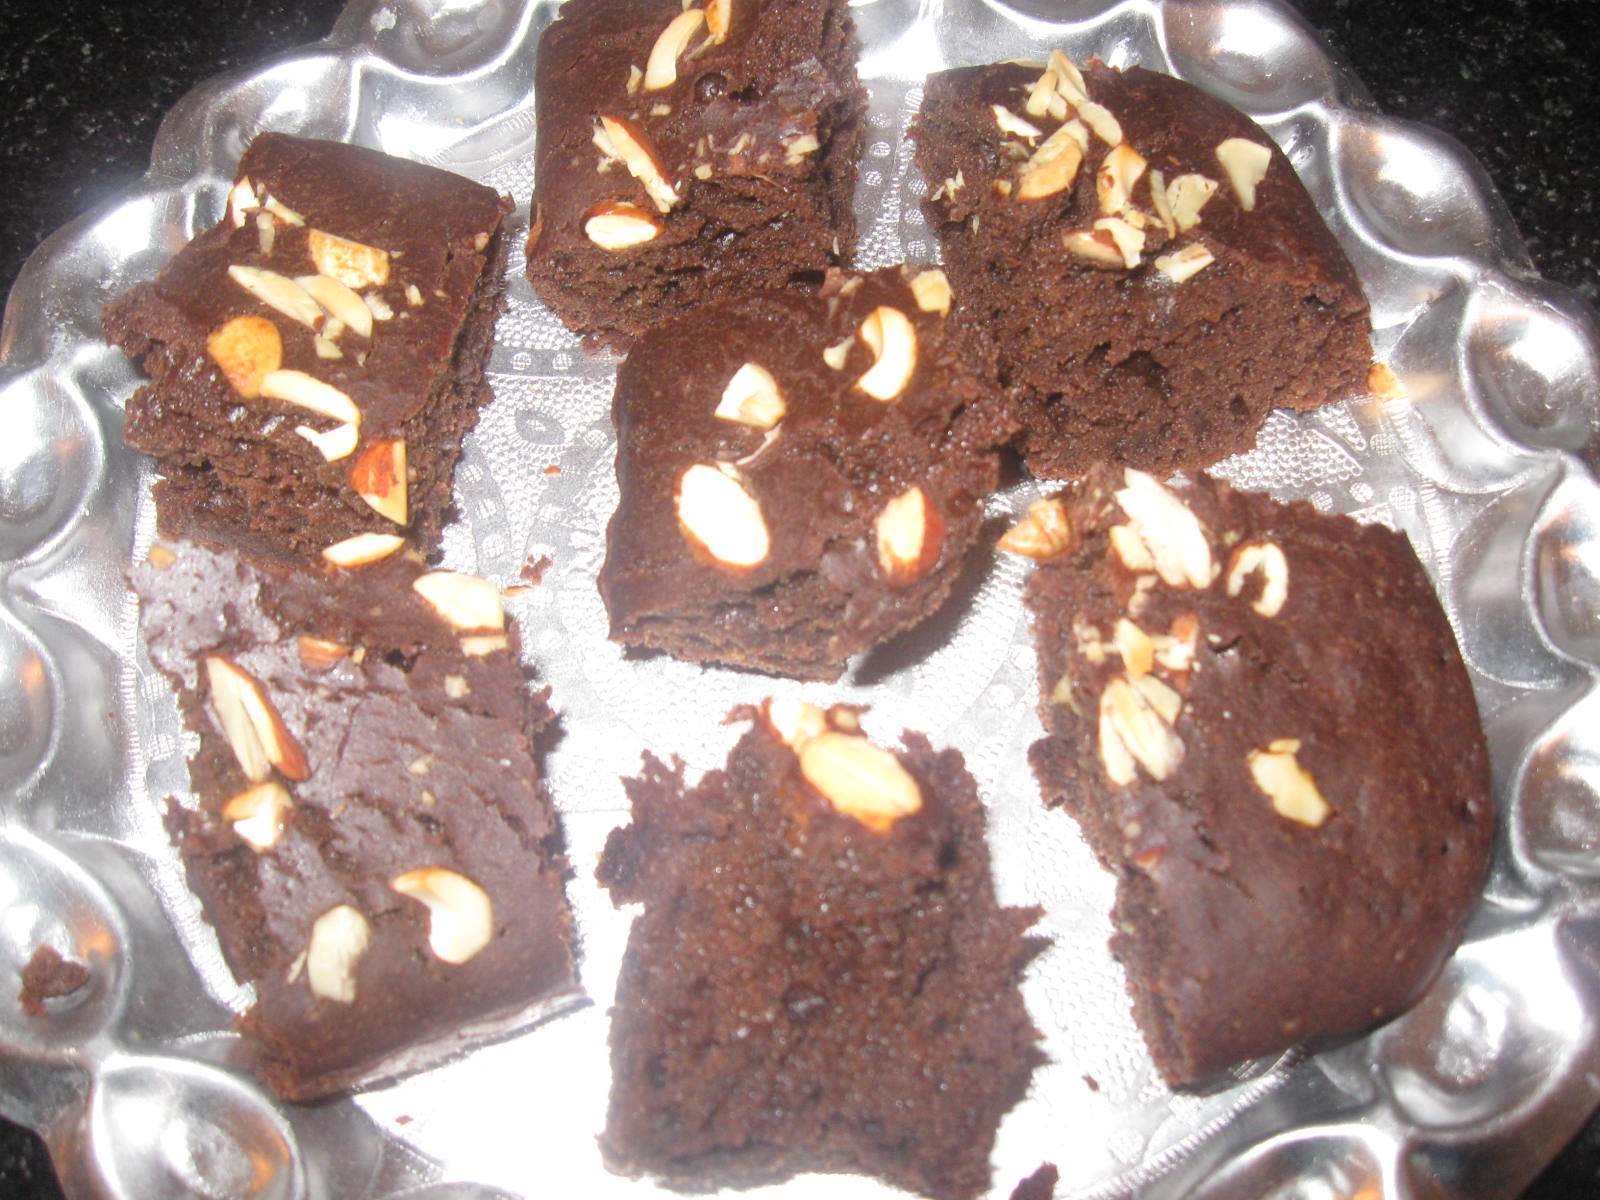 Indian Vegetarian Recipes: Eggless Chocolate Brownie in Cooker